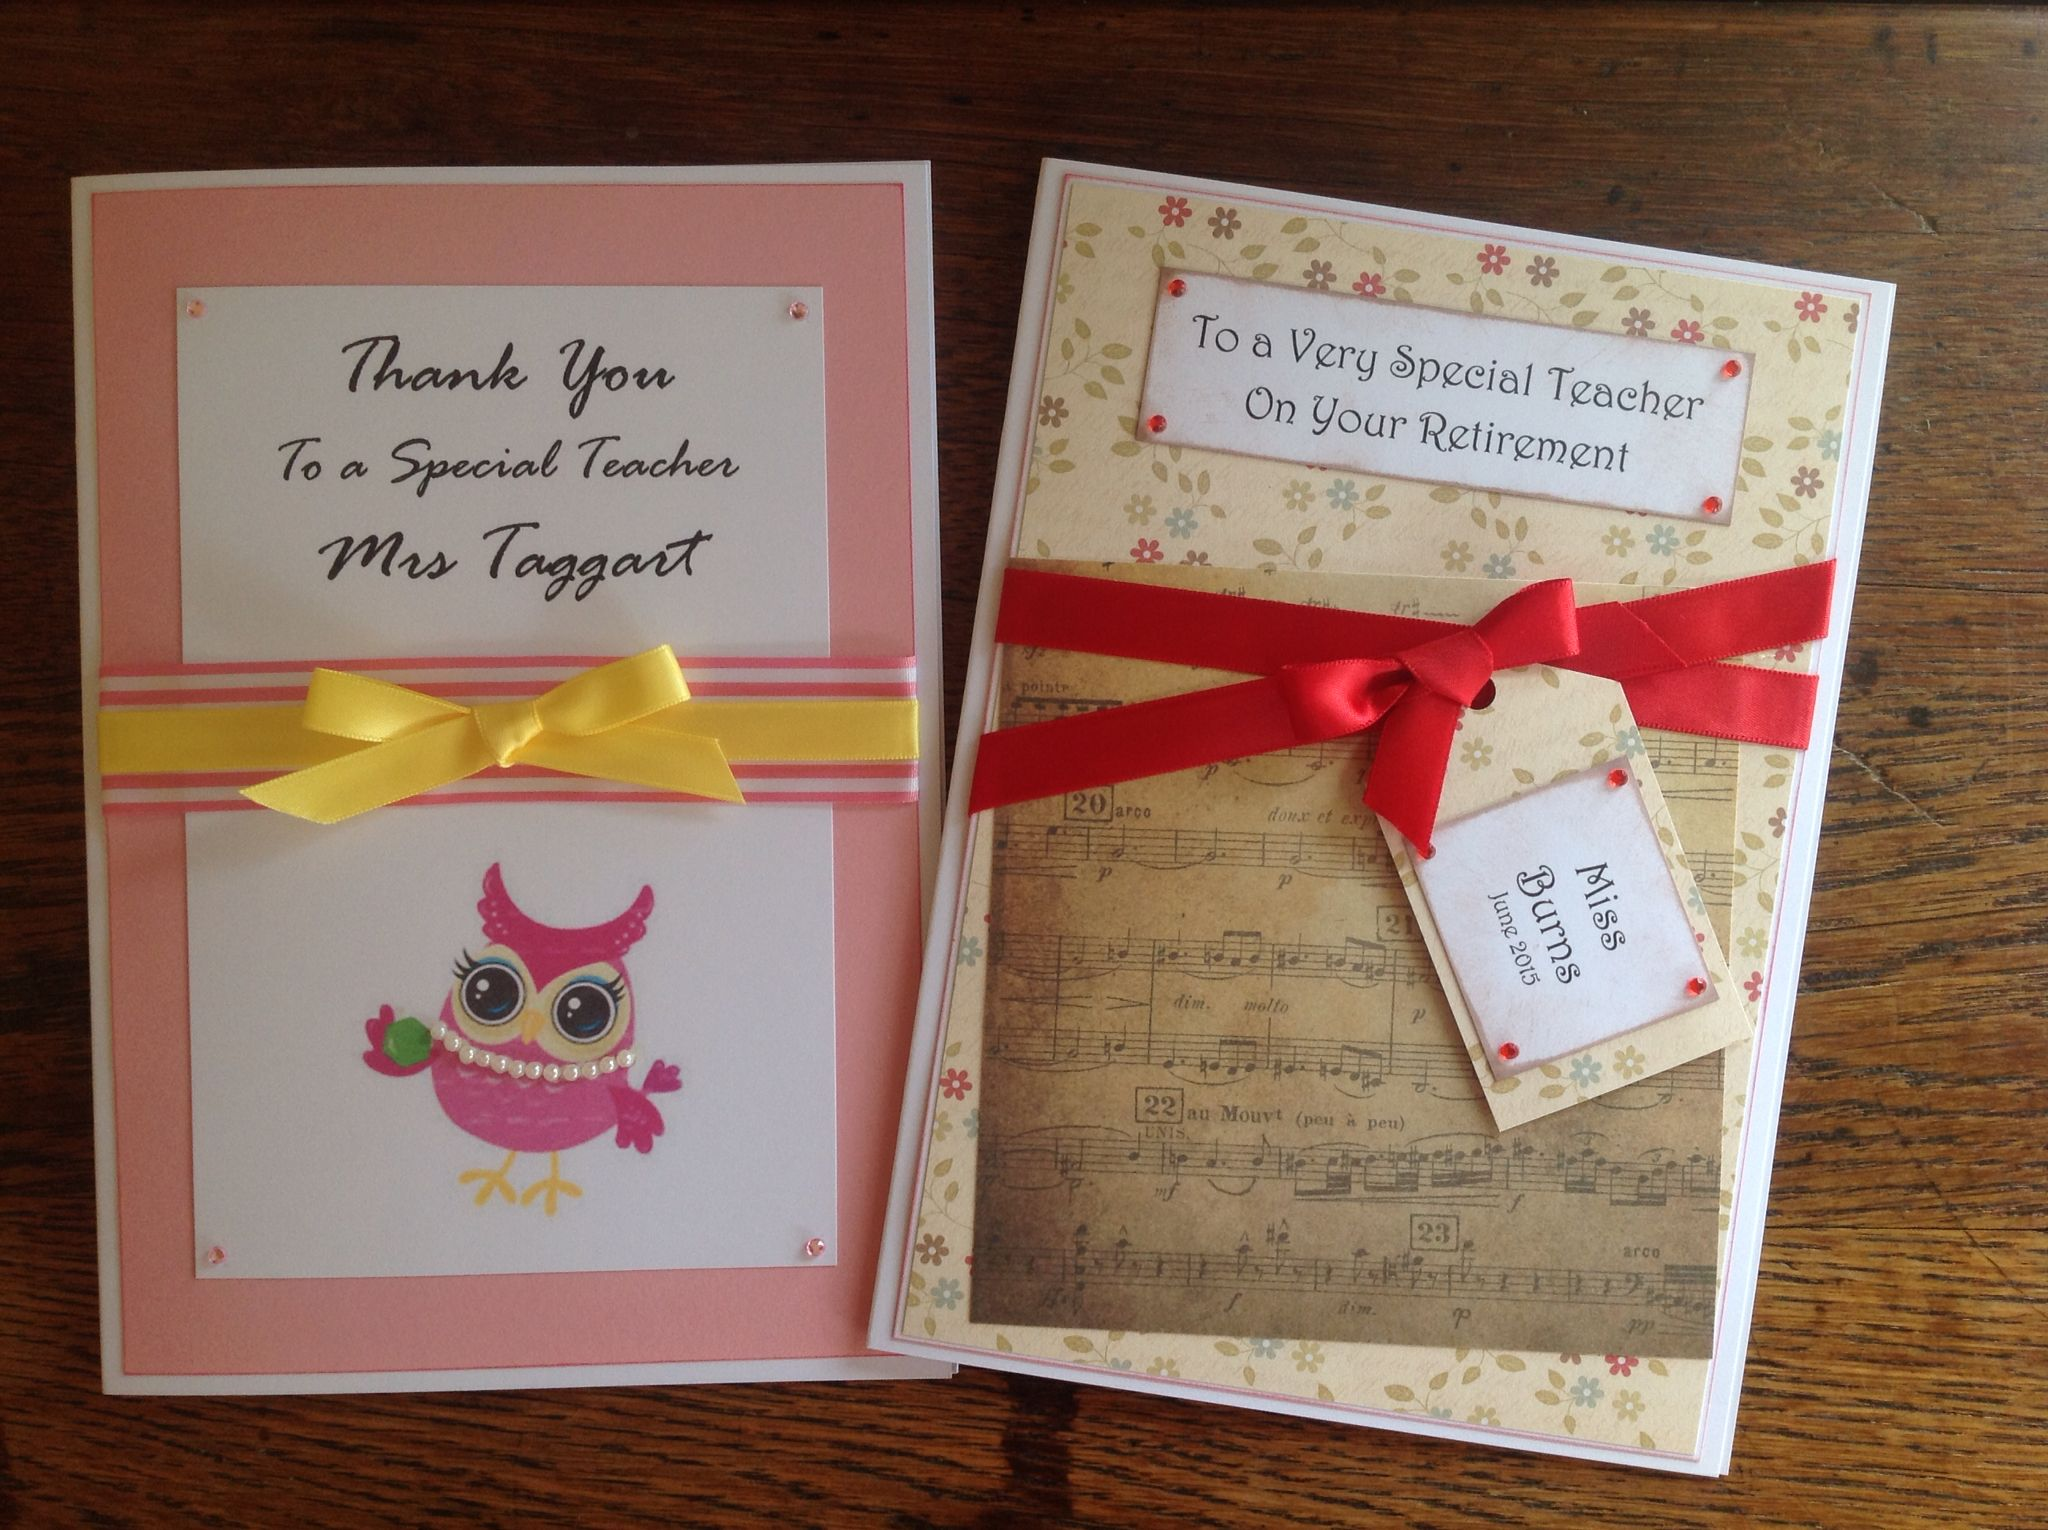 I do love the little owls but this retirement card for a music